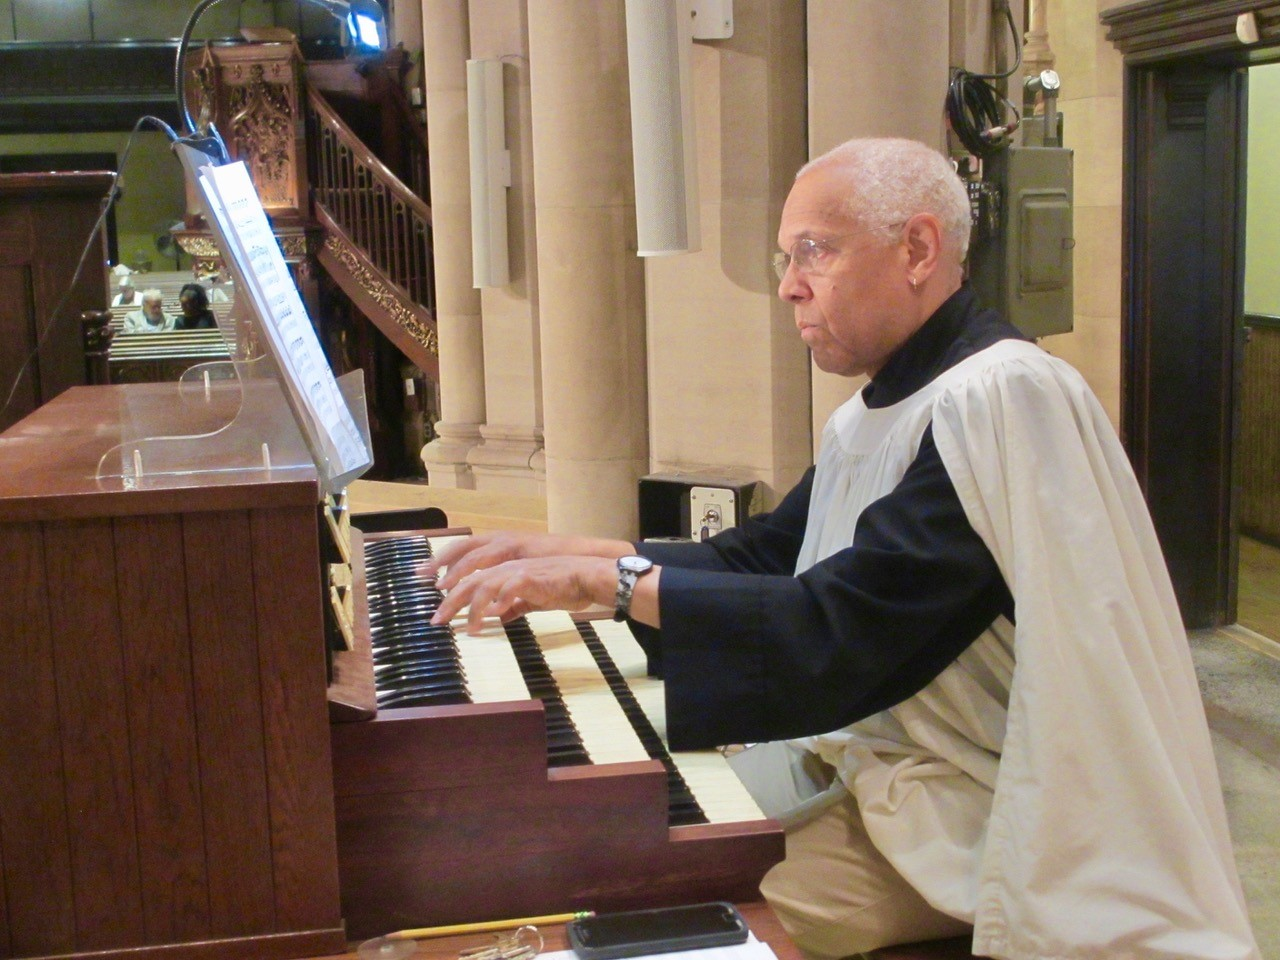 Dr. David Hurd plays the service at the downstairs console.  Photo:  MaryJane Boland